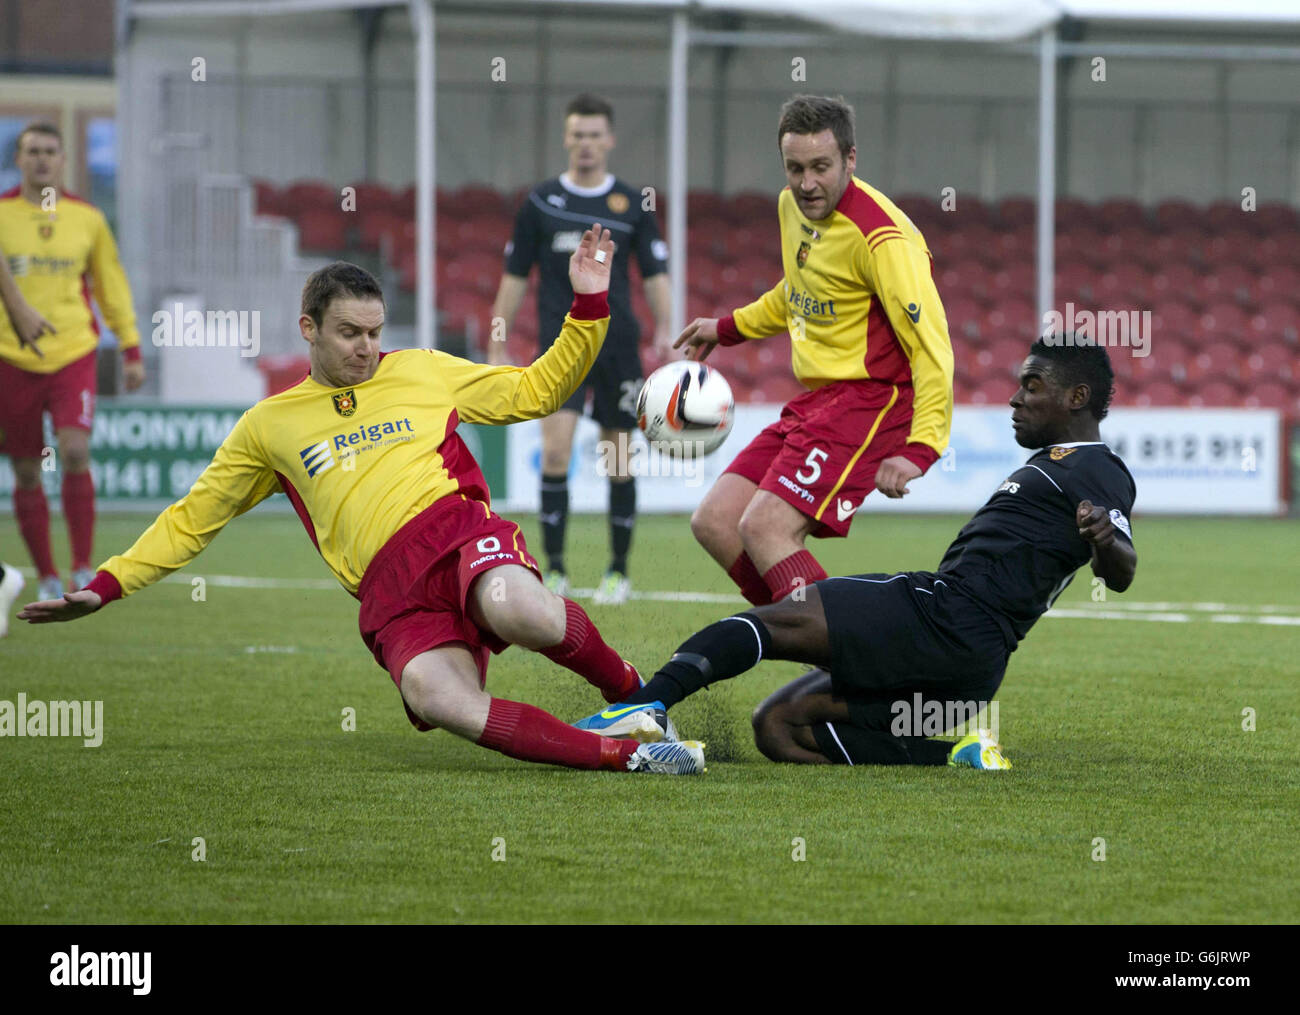 albion rovers cowdenbeath sofascore corte ingles sofas stock photos and images